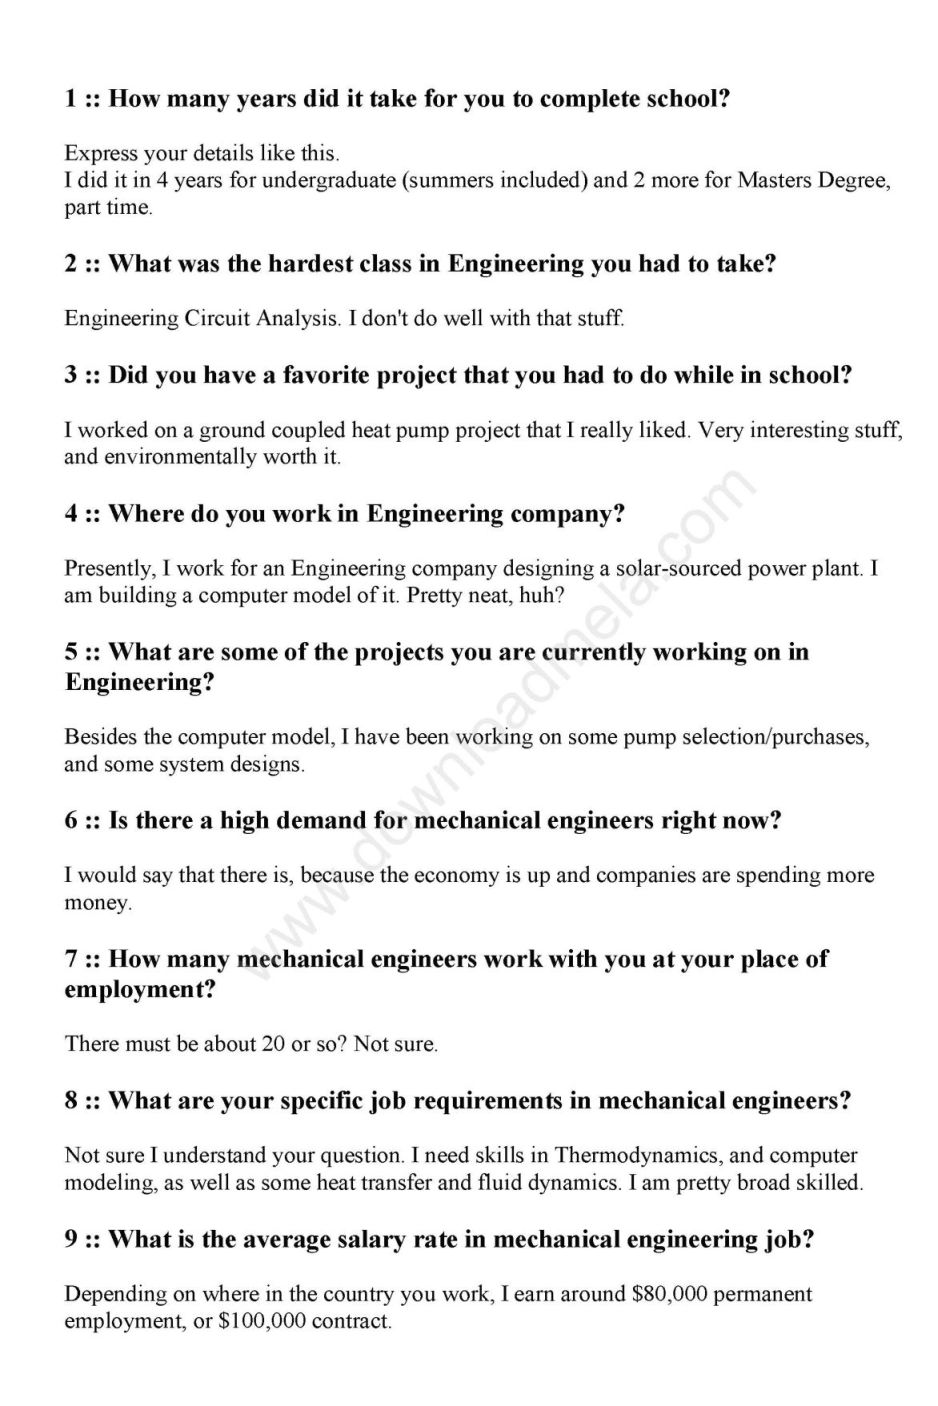 Research papers in mechanical engineering pdf